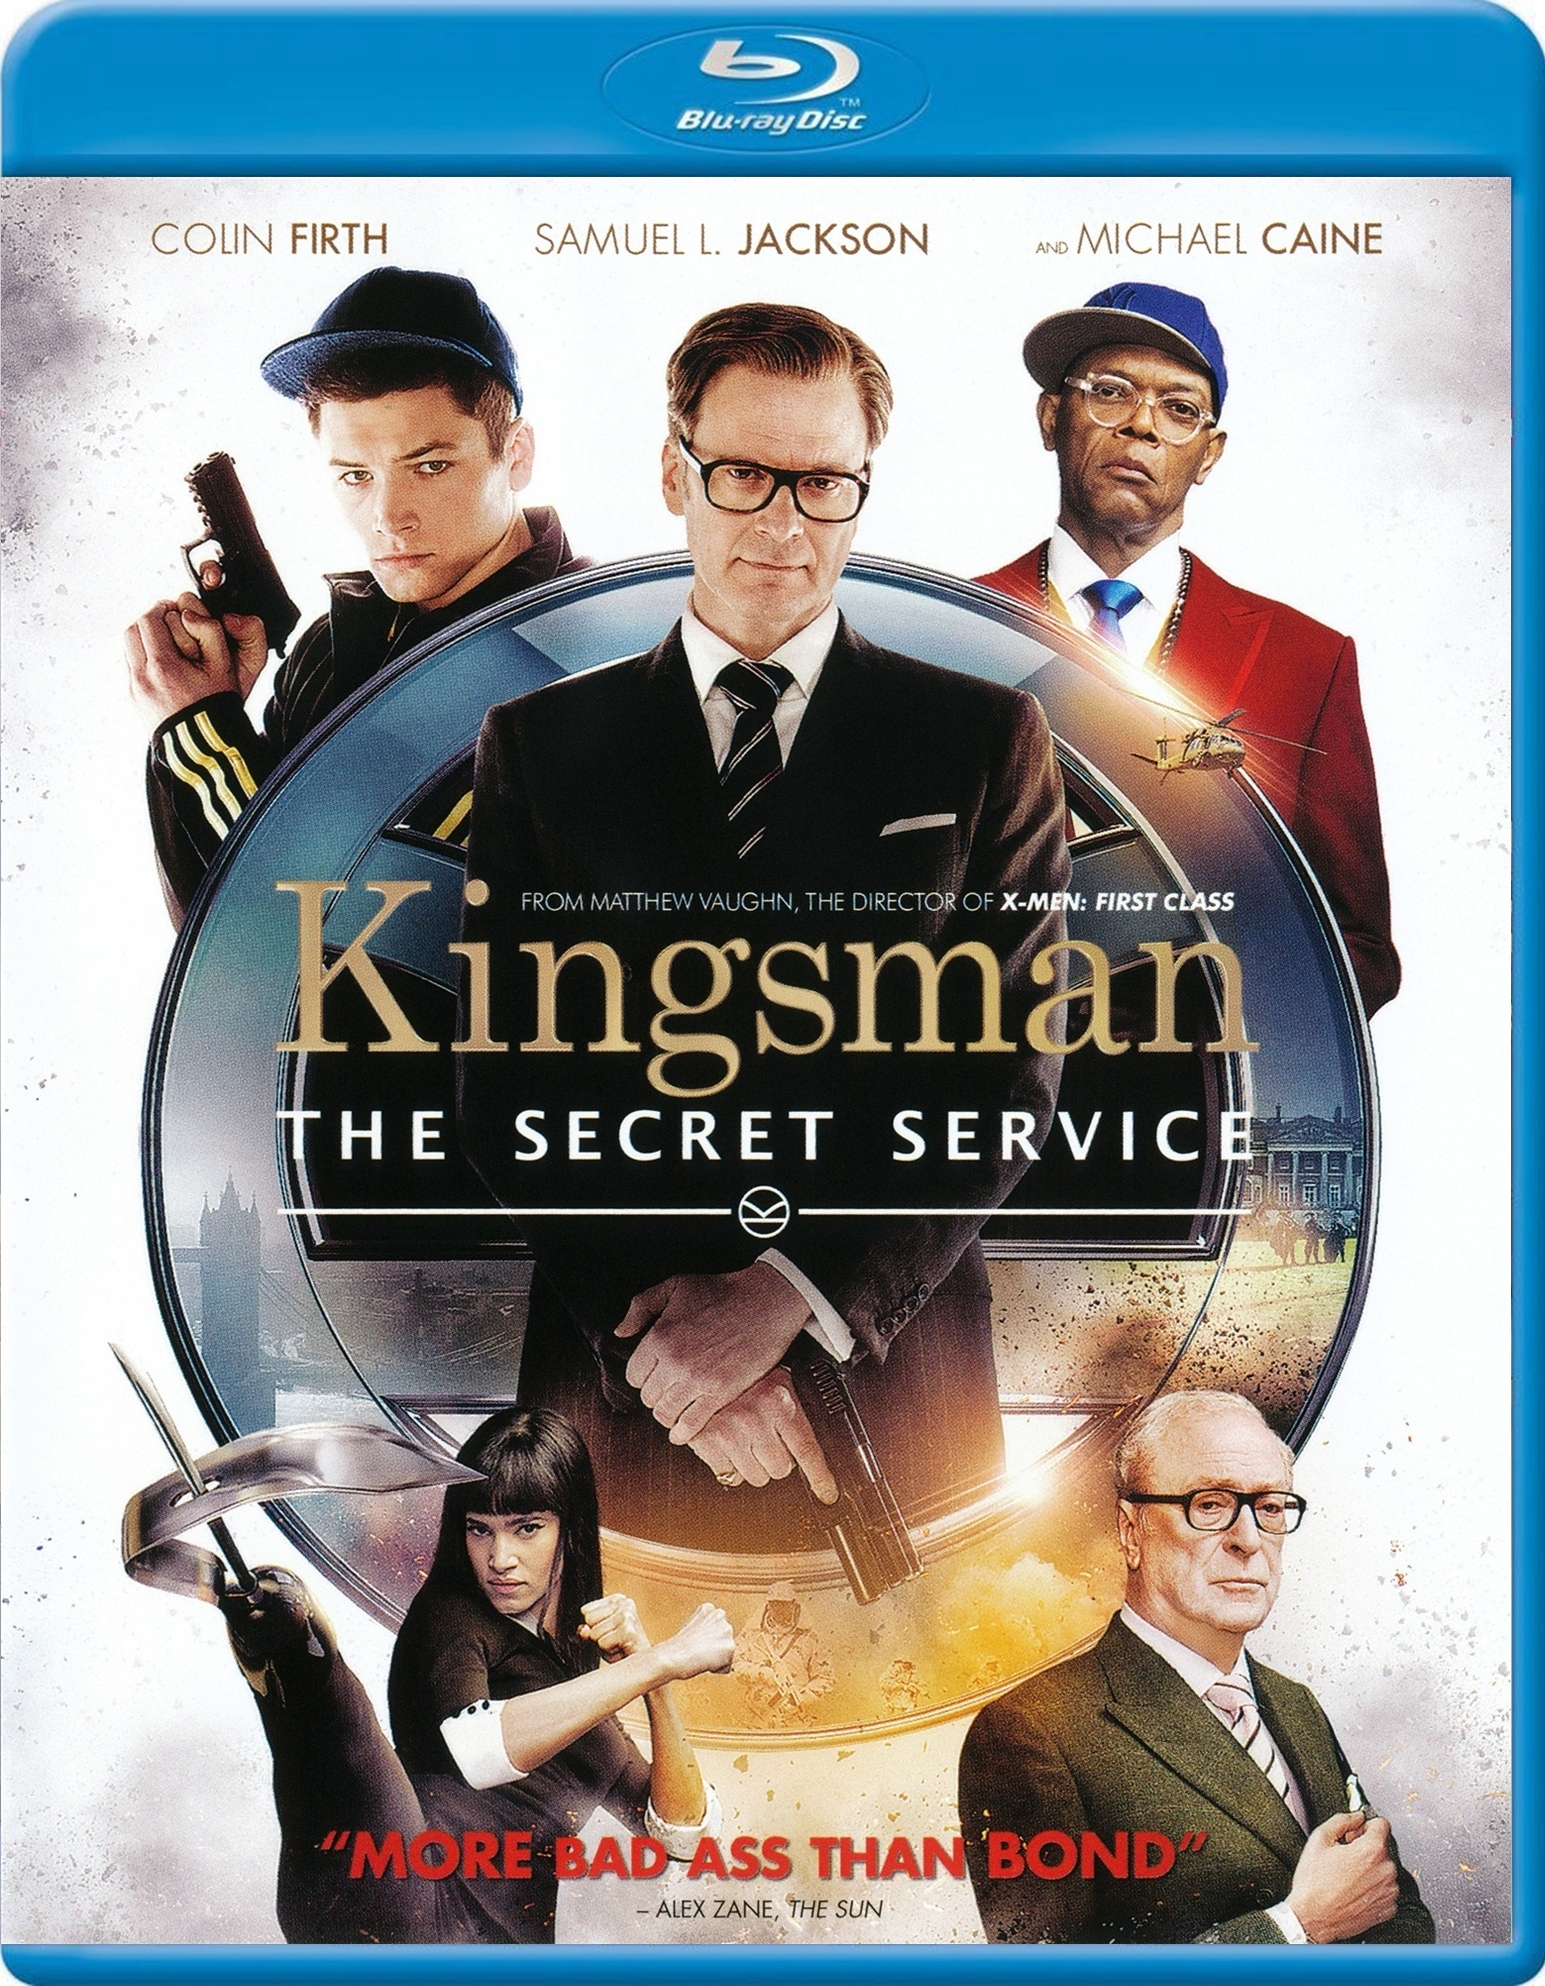 Kingsman: The Secret Service Revealed (2015) (V) Watch Full Movie Free Online